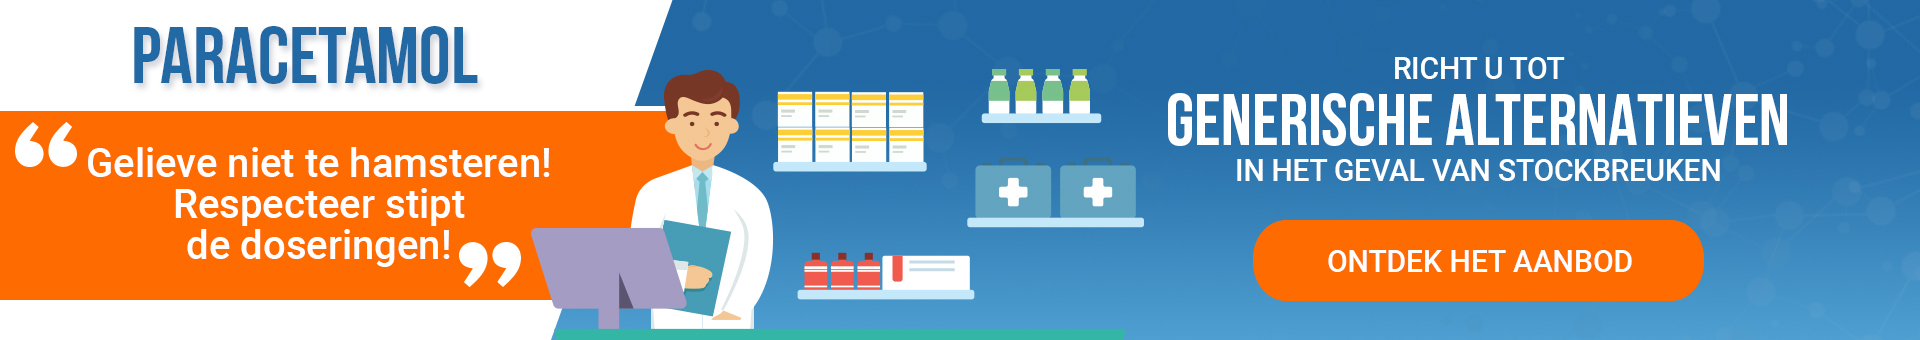 Pharmacy_by_Banner_Paracetamol_NL_385x613.jpg